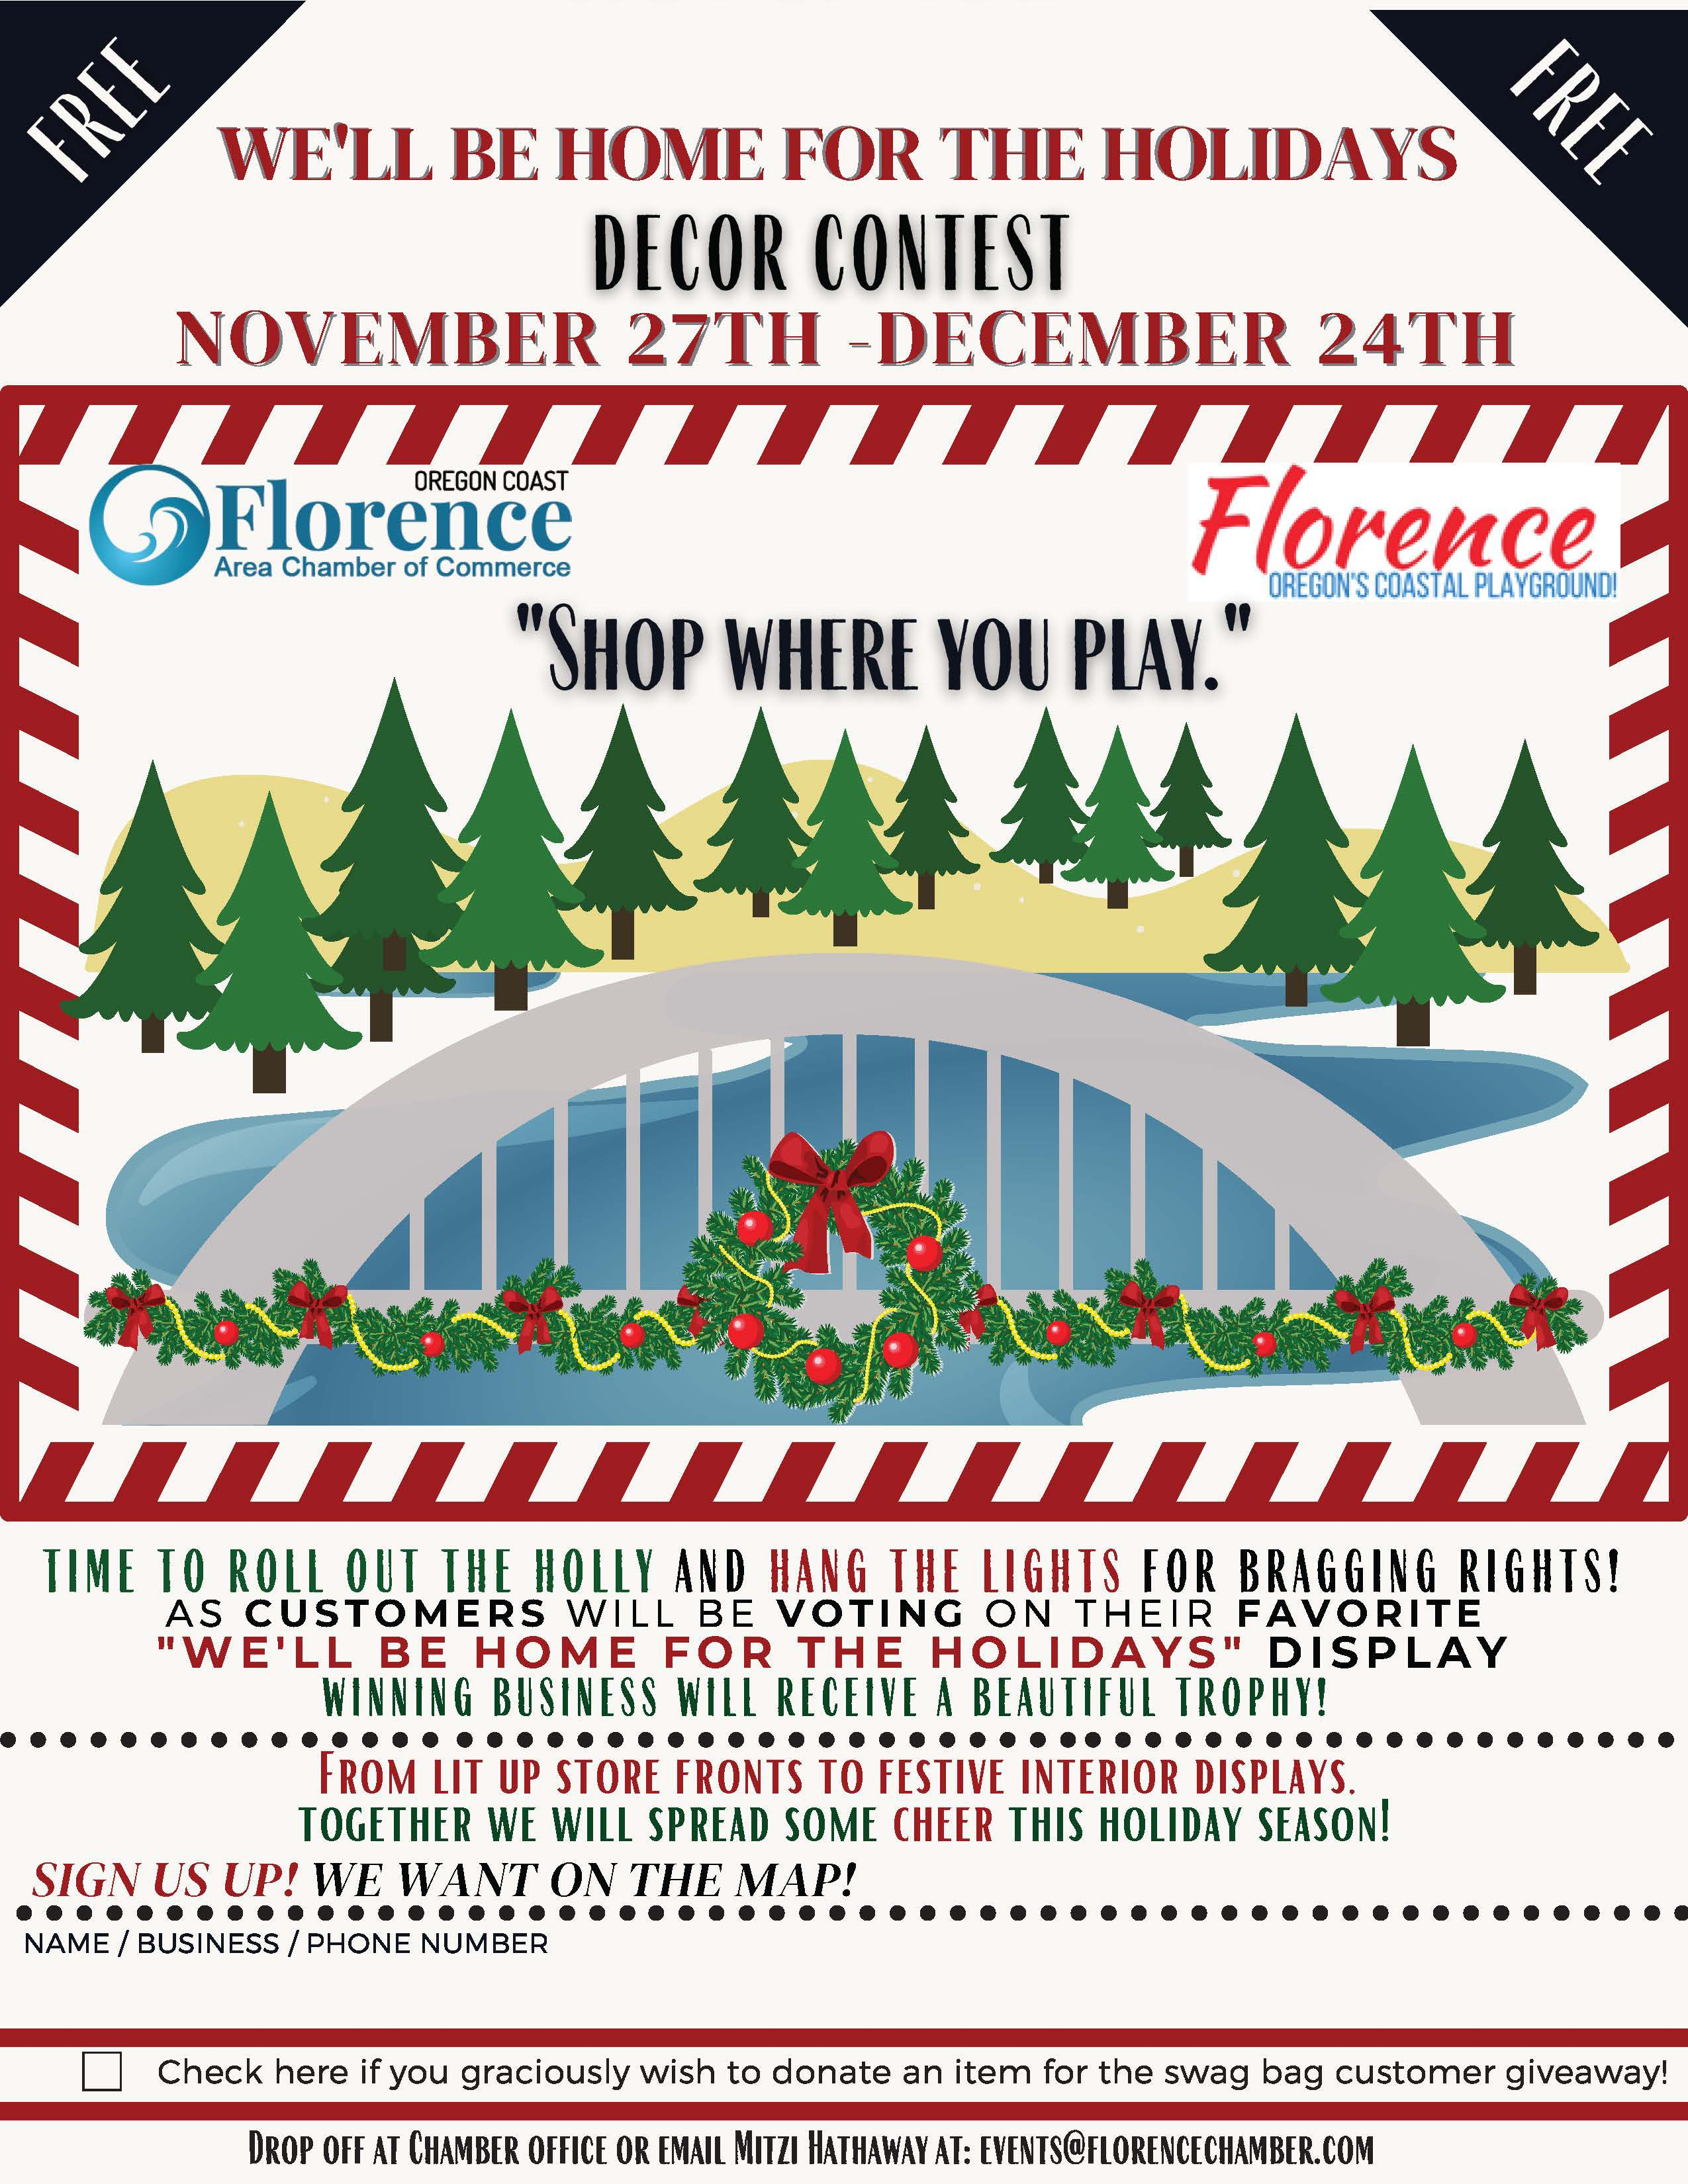 We'll be home for the Holidays Decor Contest – Sign up today to join the fun and do some business!